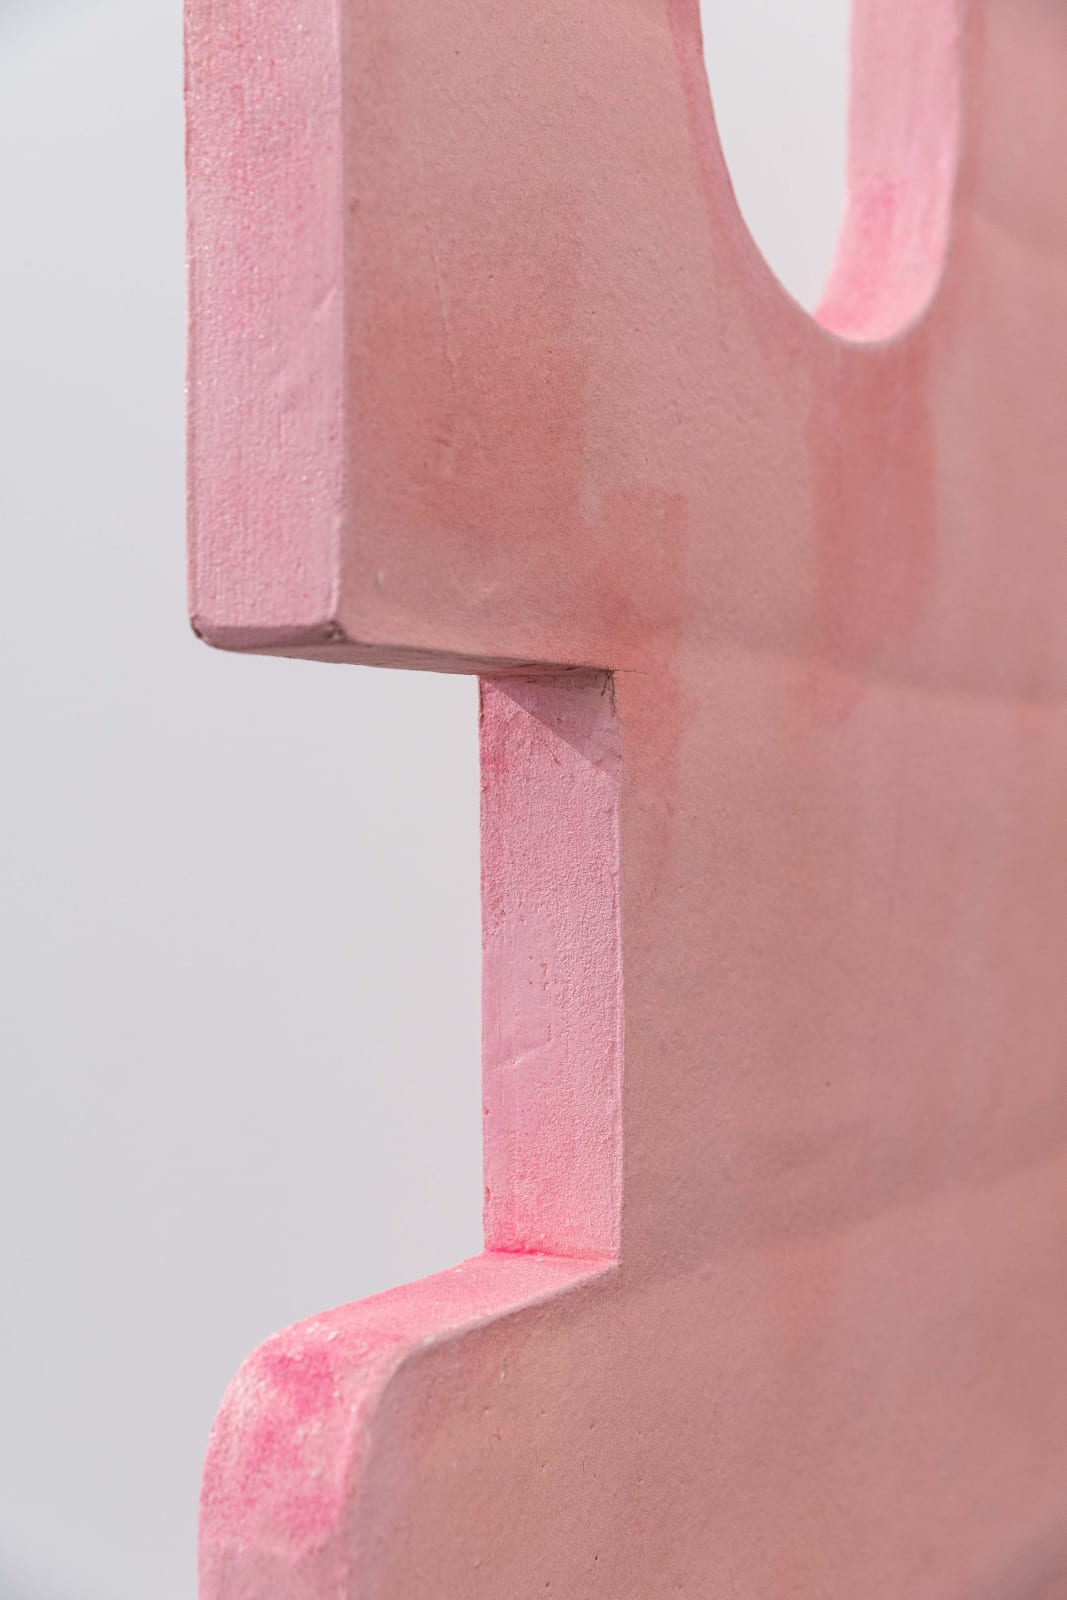 Keith Sonnier, Stock Prop (Detail), 2010 | Photo: Dirk Tacke